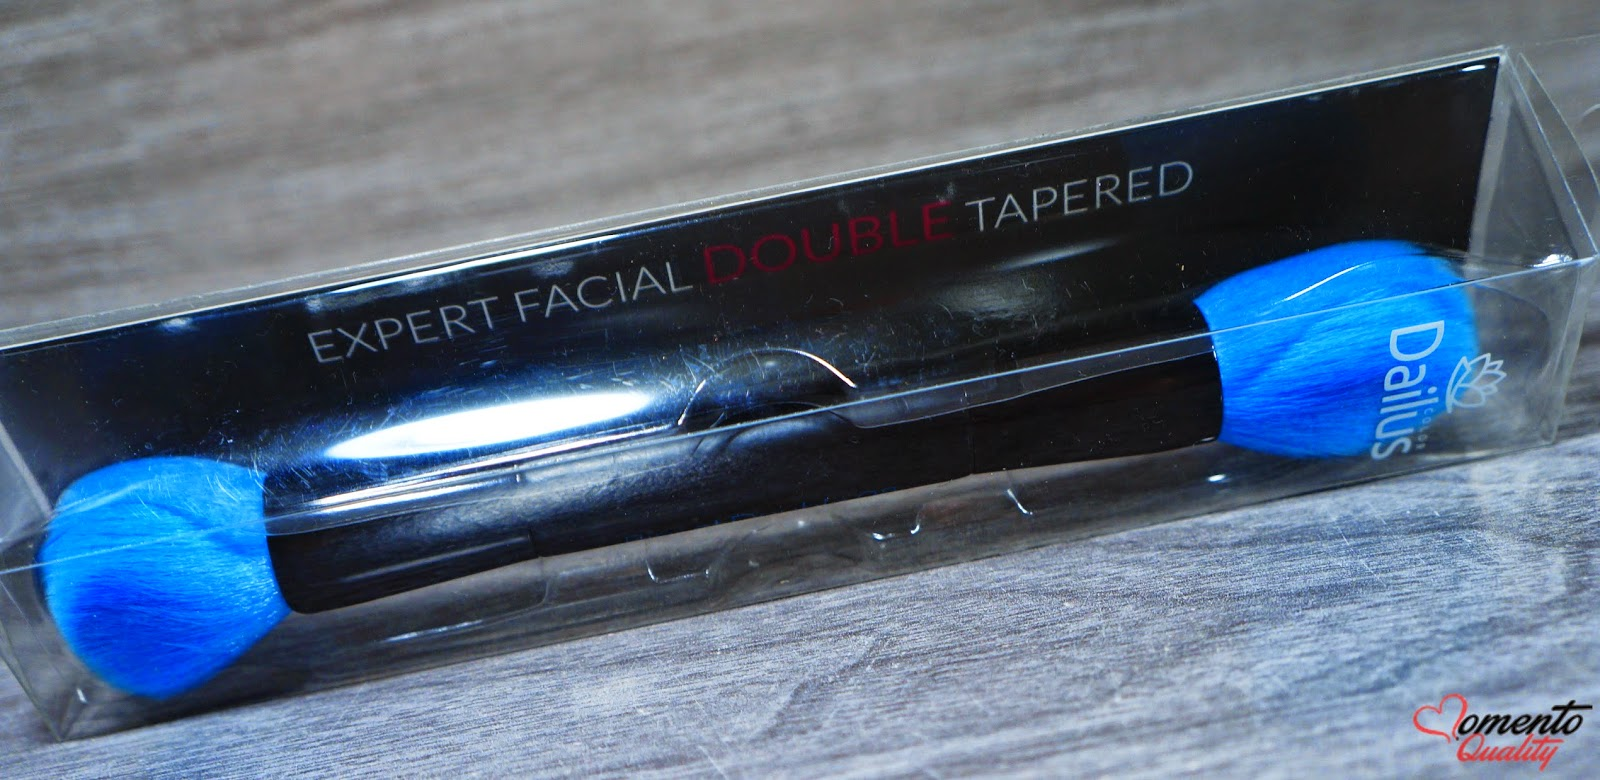 Pincel Double 08 Expert Facial e Tapered Dailus